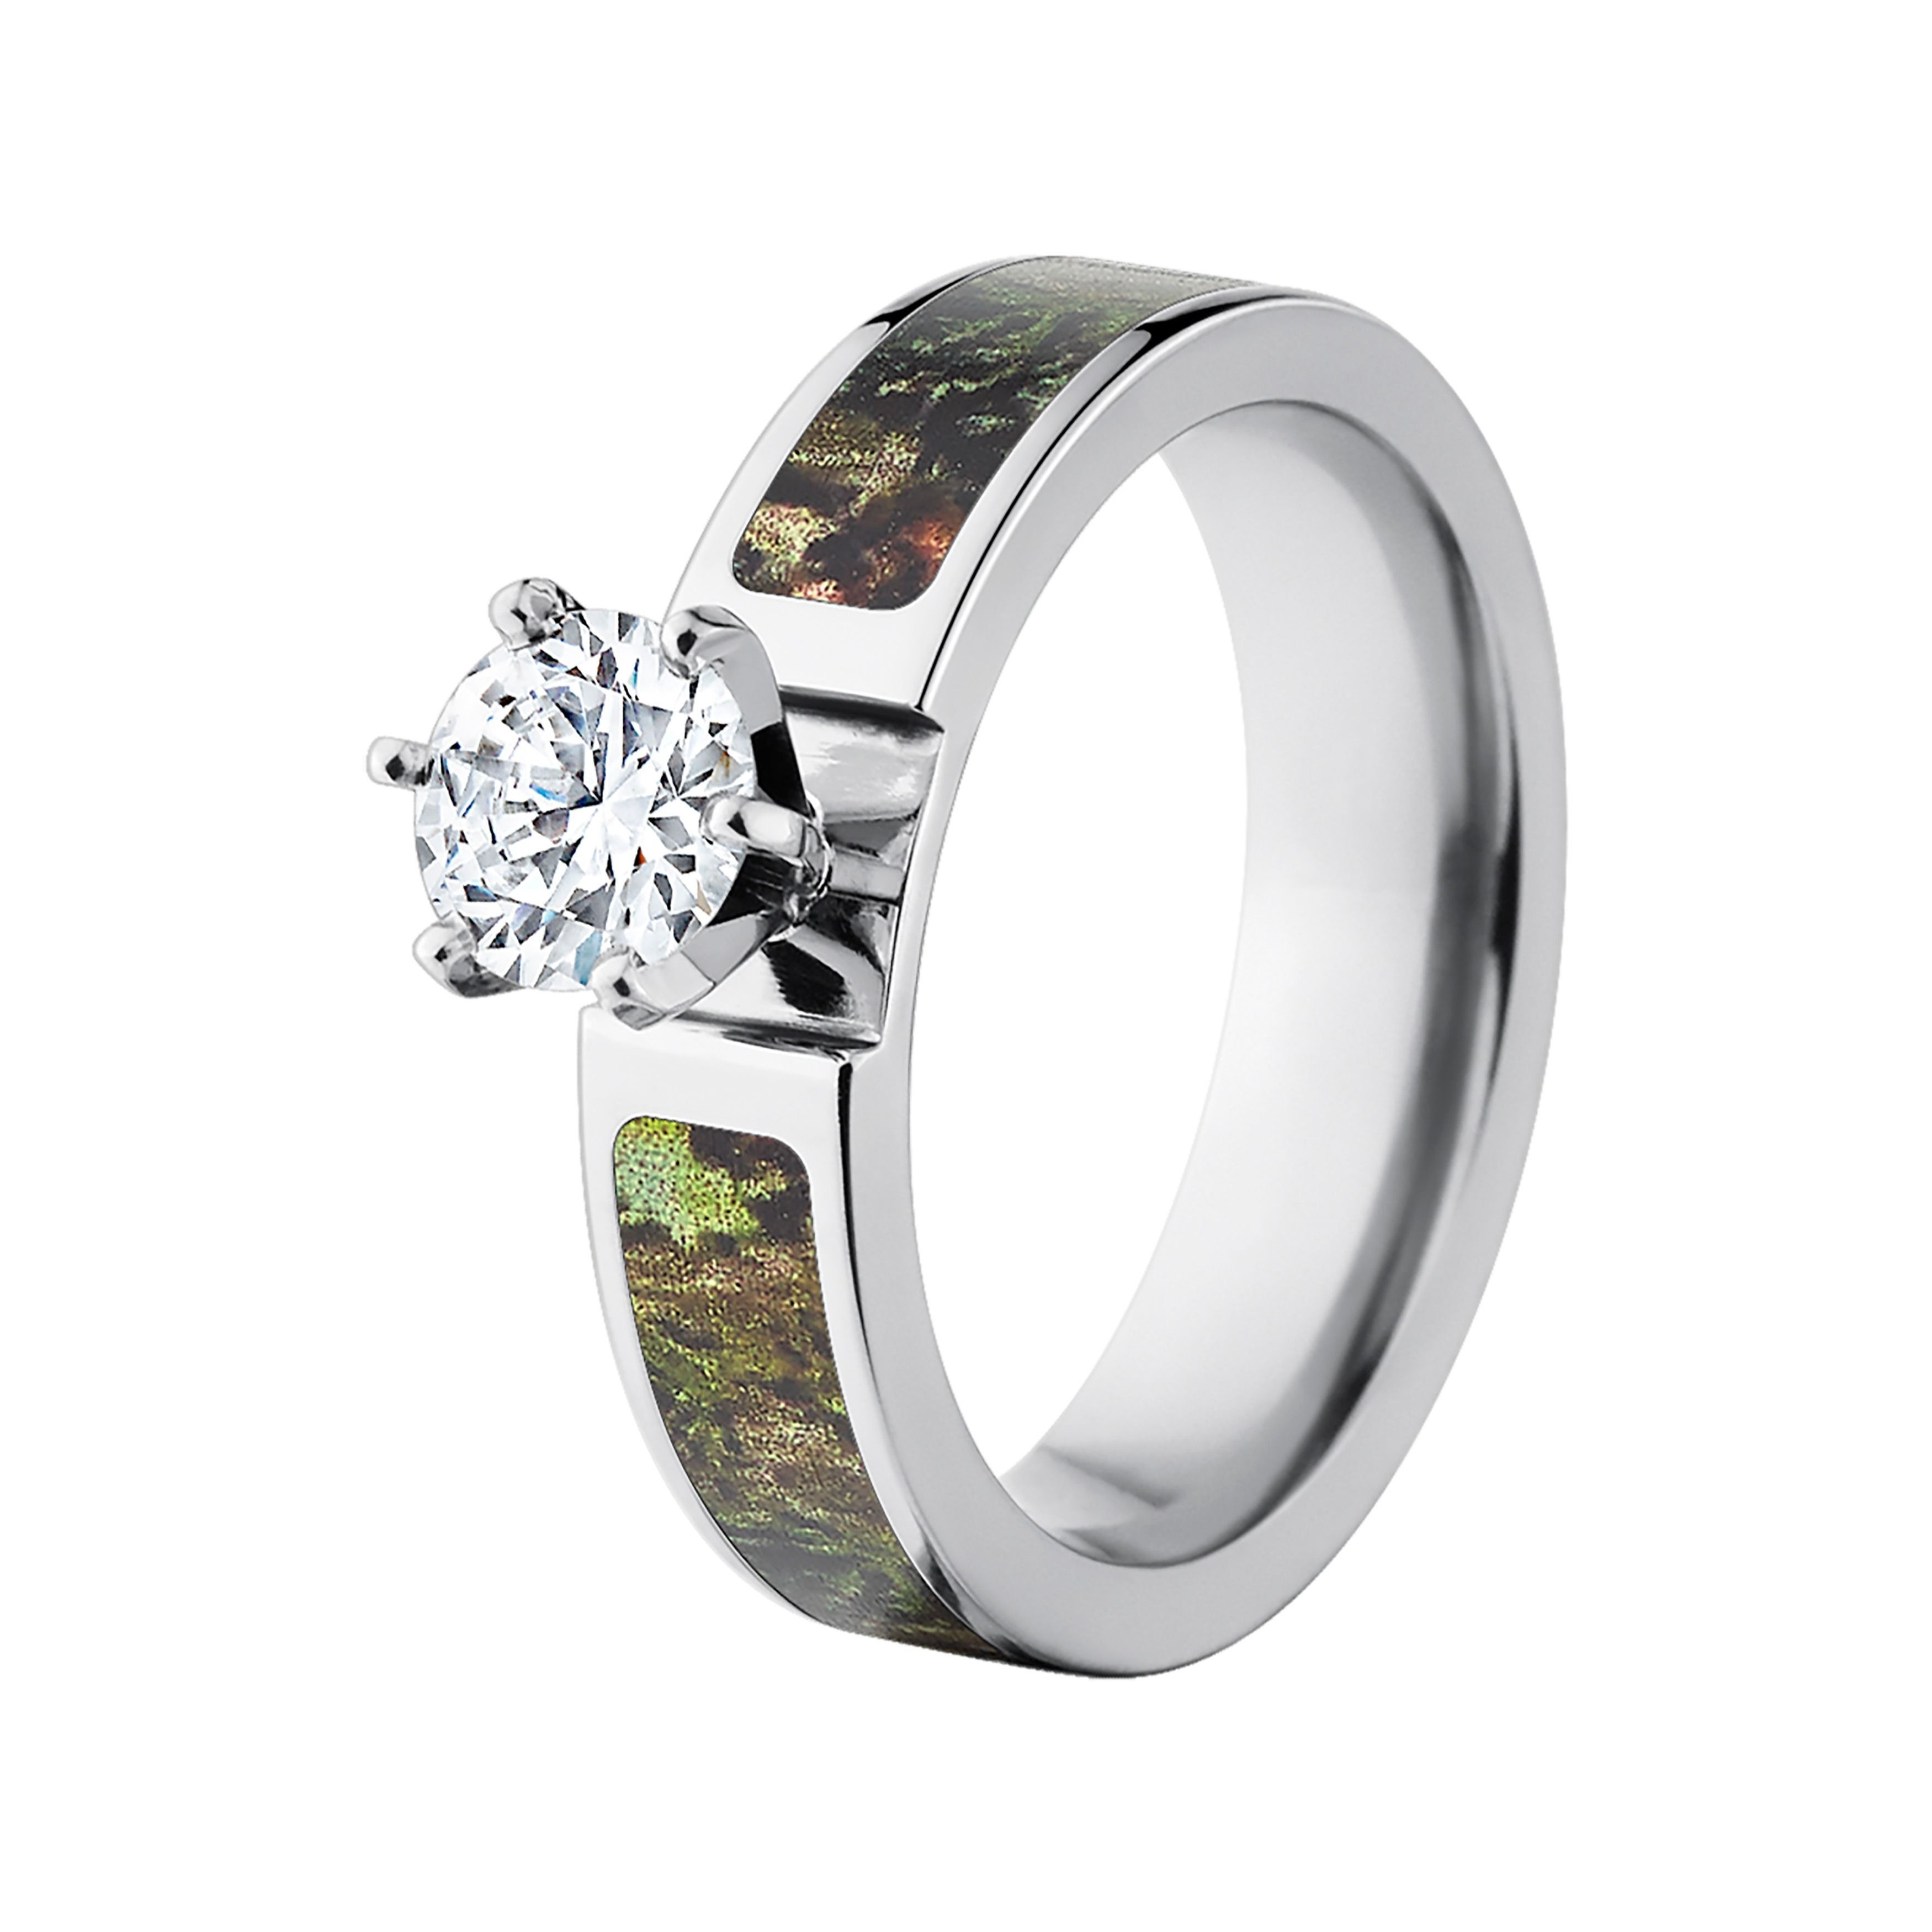 Officially Mossy Oak Camo Rings Camouflage Wedding Rings Camo Bands